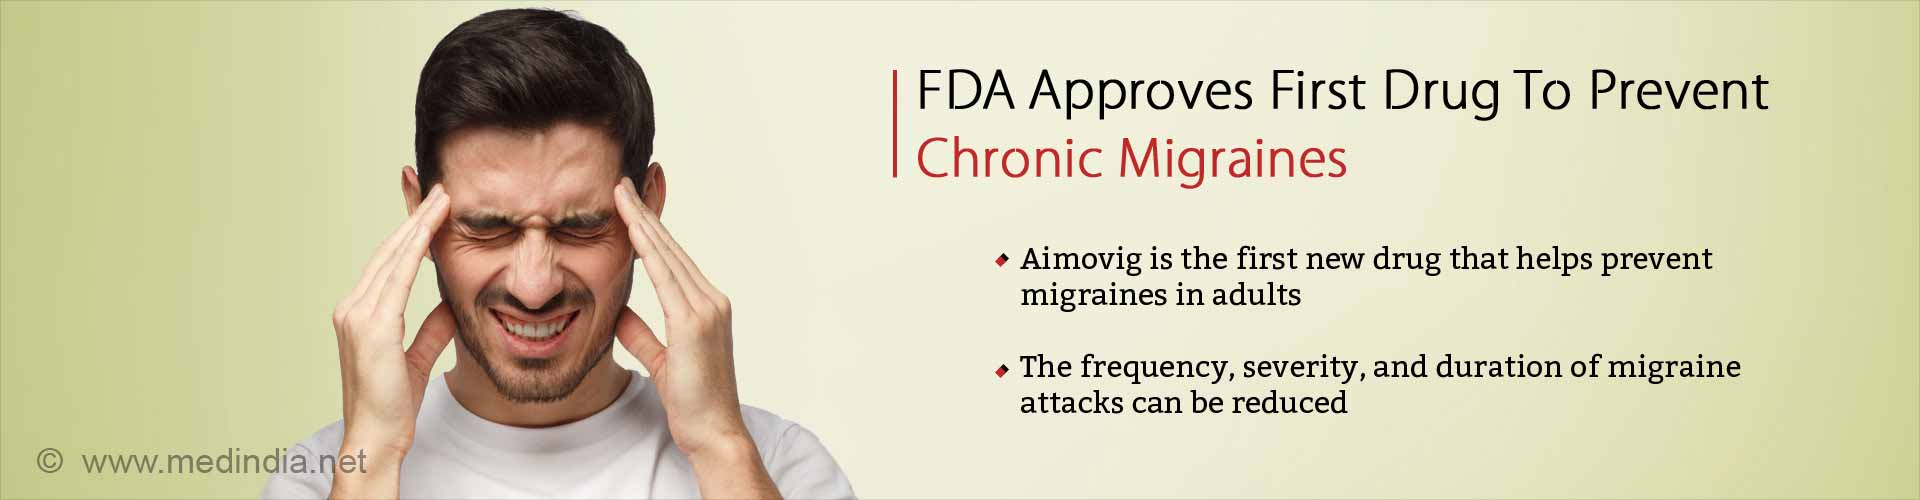 First Drug to Prevent Chronic Migraines Developed